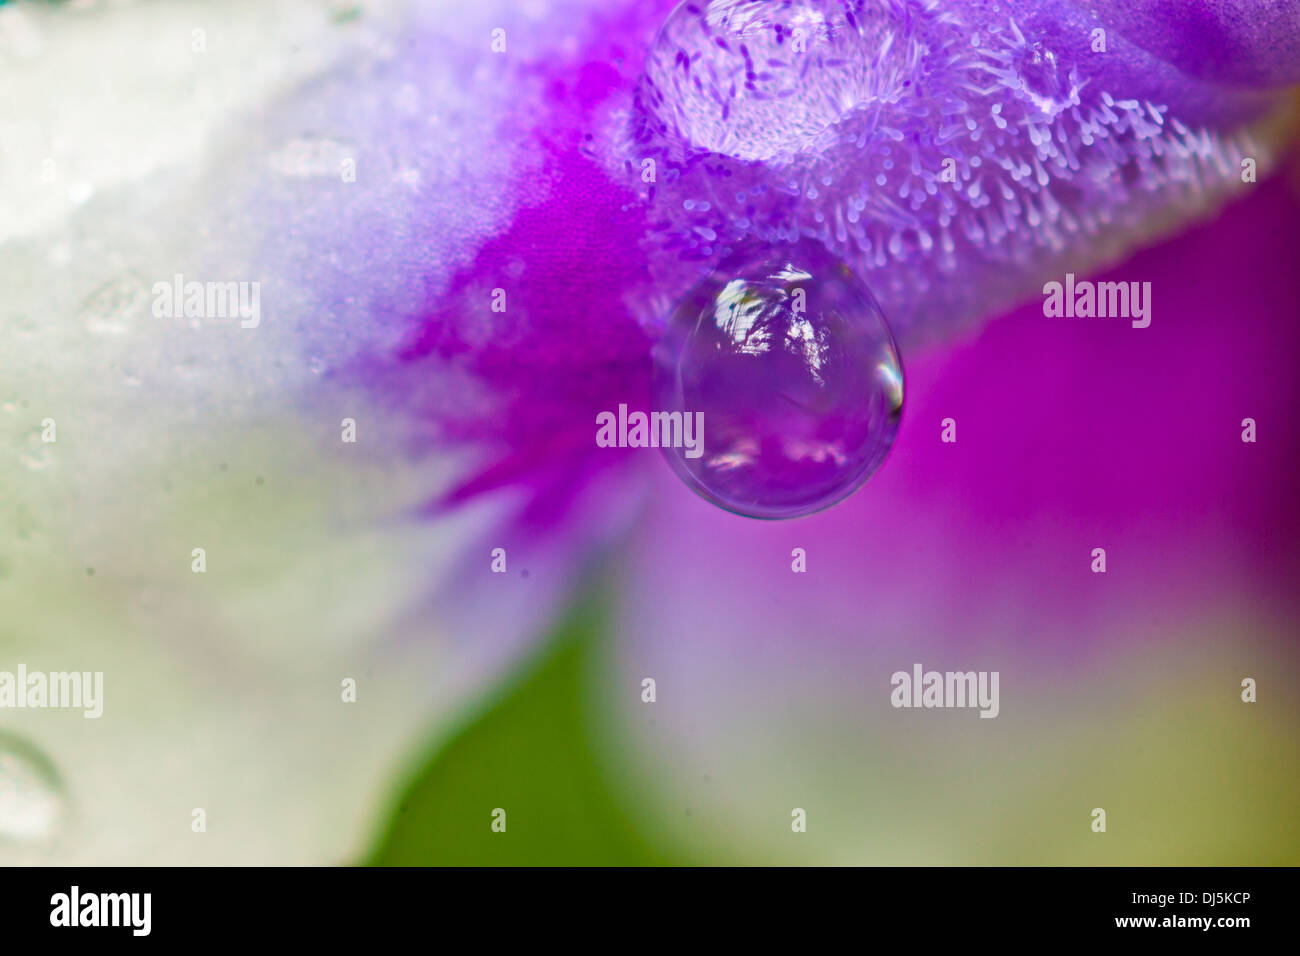 Flower with waterdrops Stock Photo